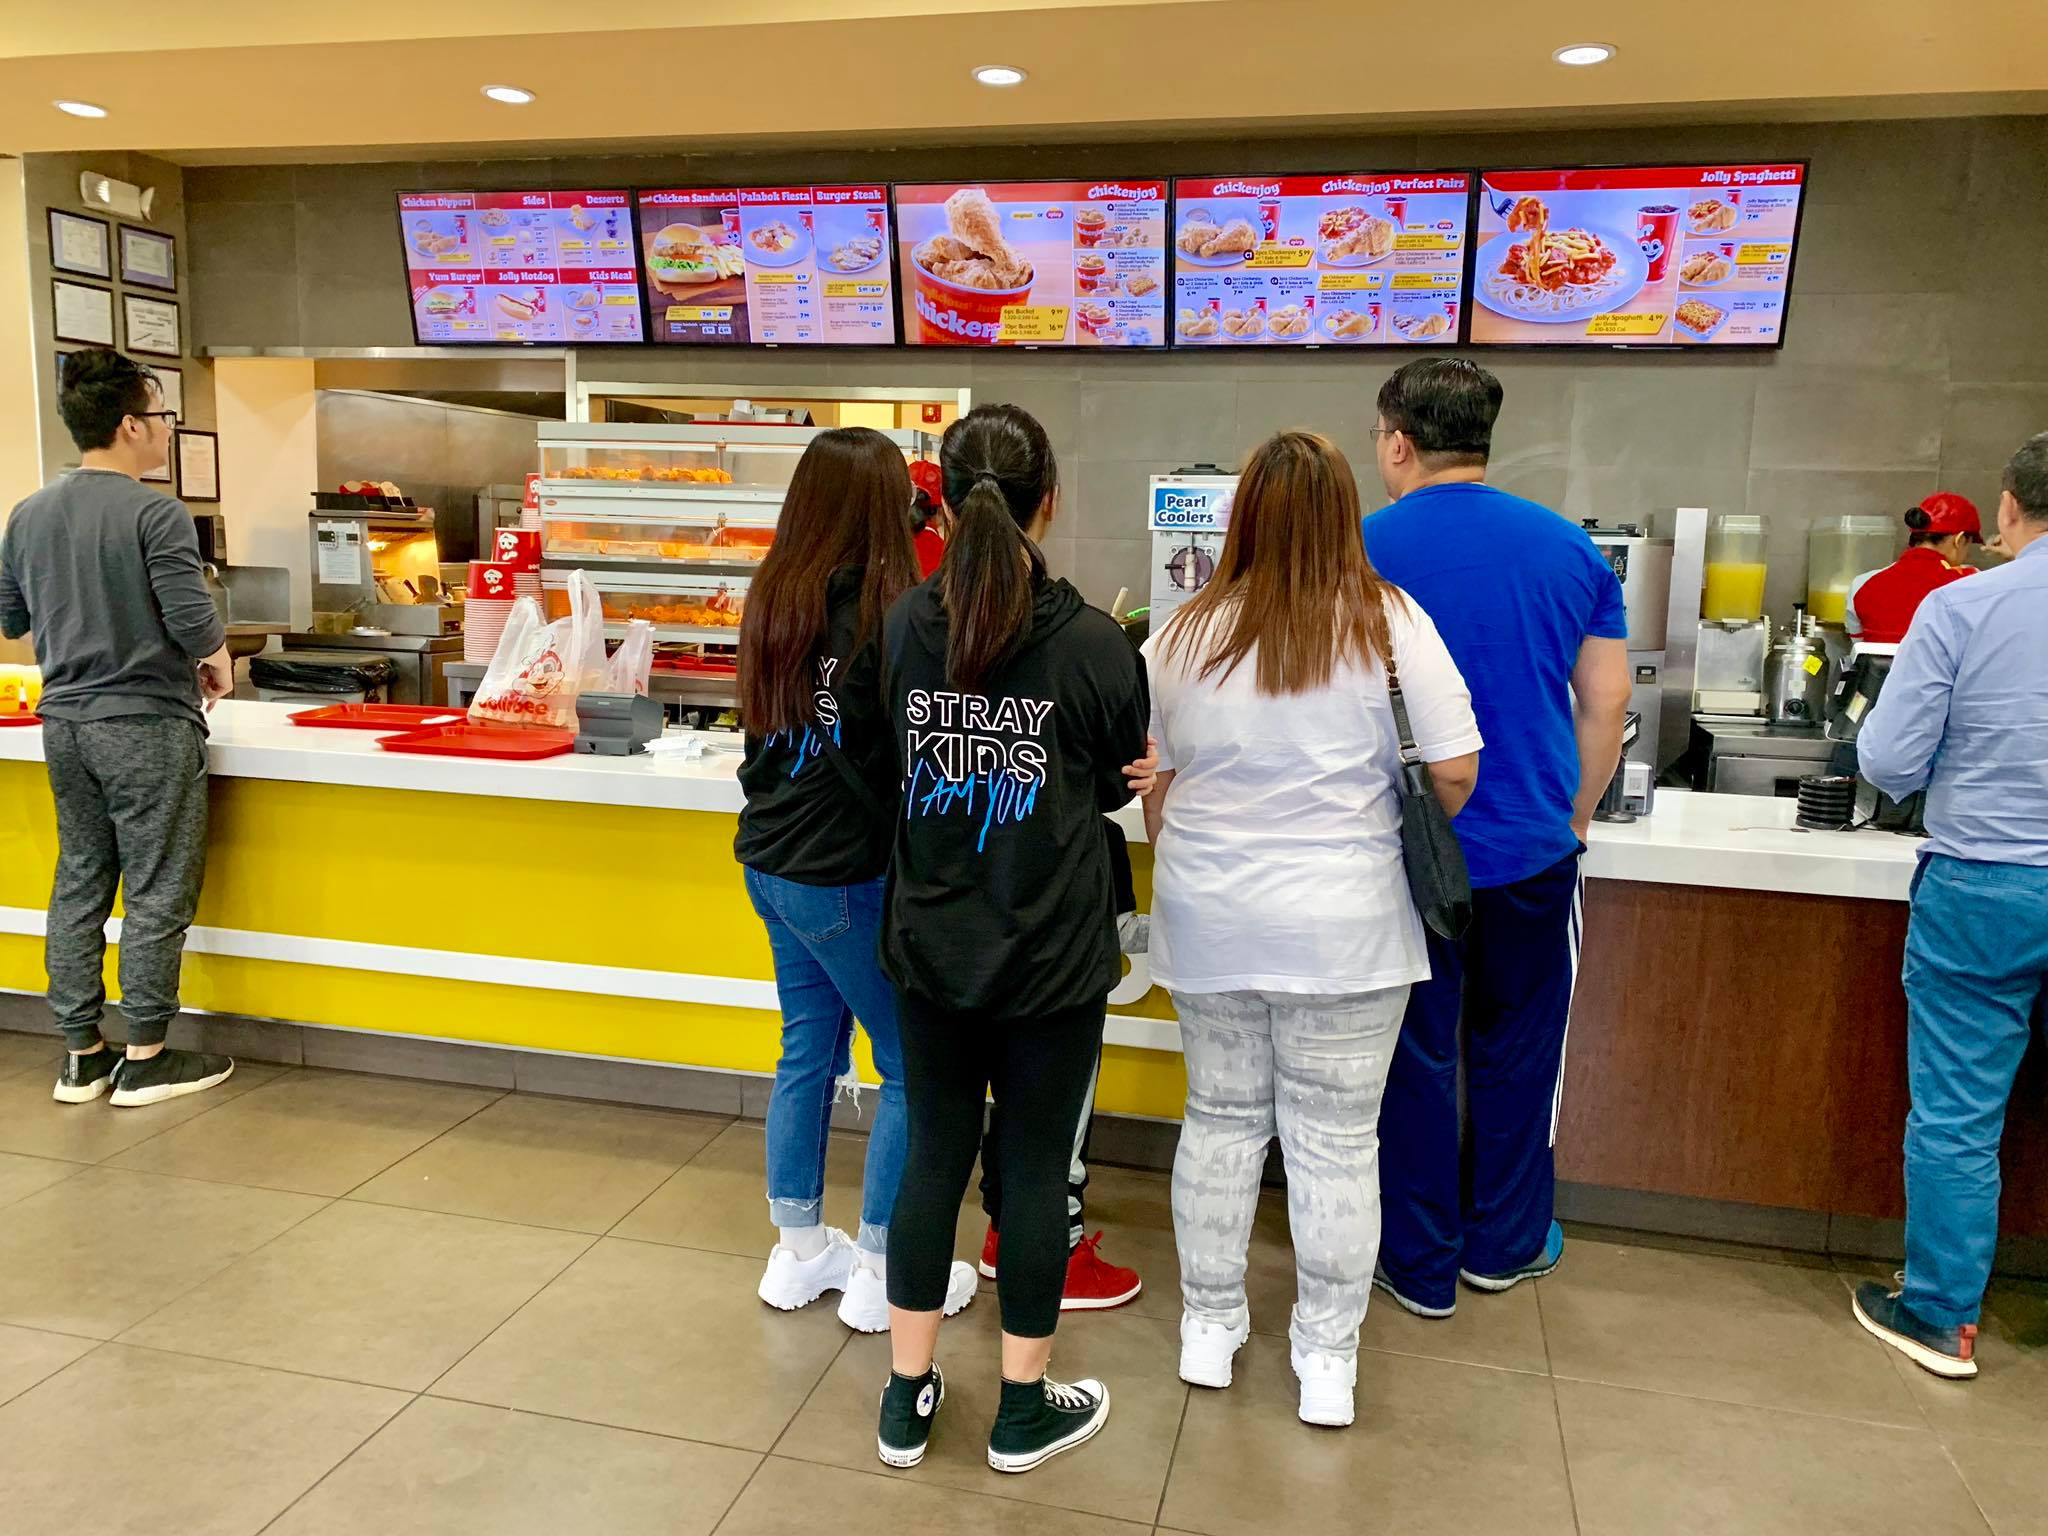 Life On The Road Day 18 Jollibee in New Jersey and our last week in USA11.jpg